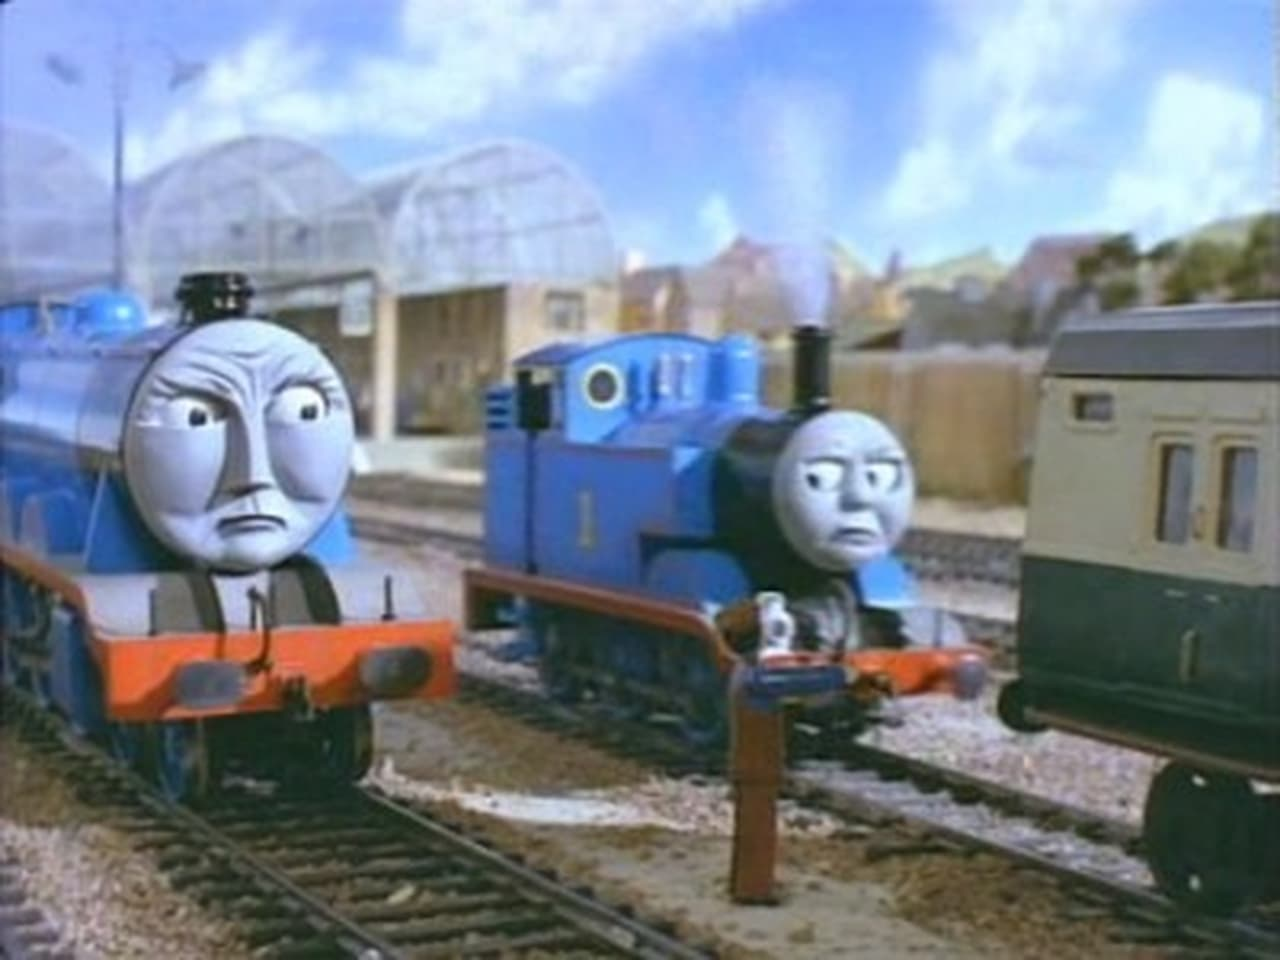 Thomas & Friends - Season 1 Episode 1 : Thomas & Gordon (2020)